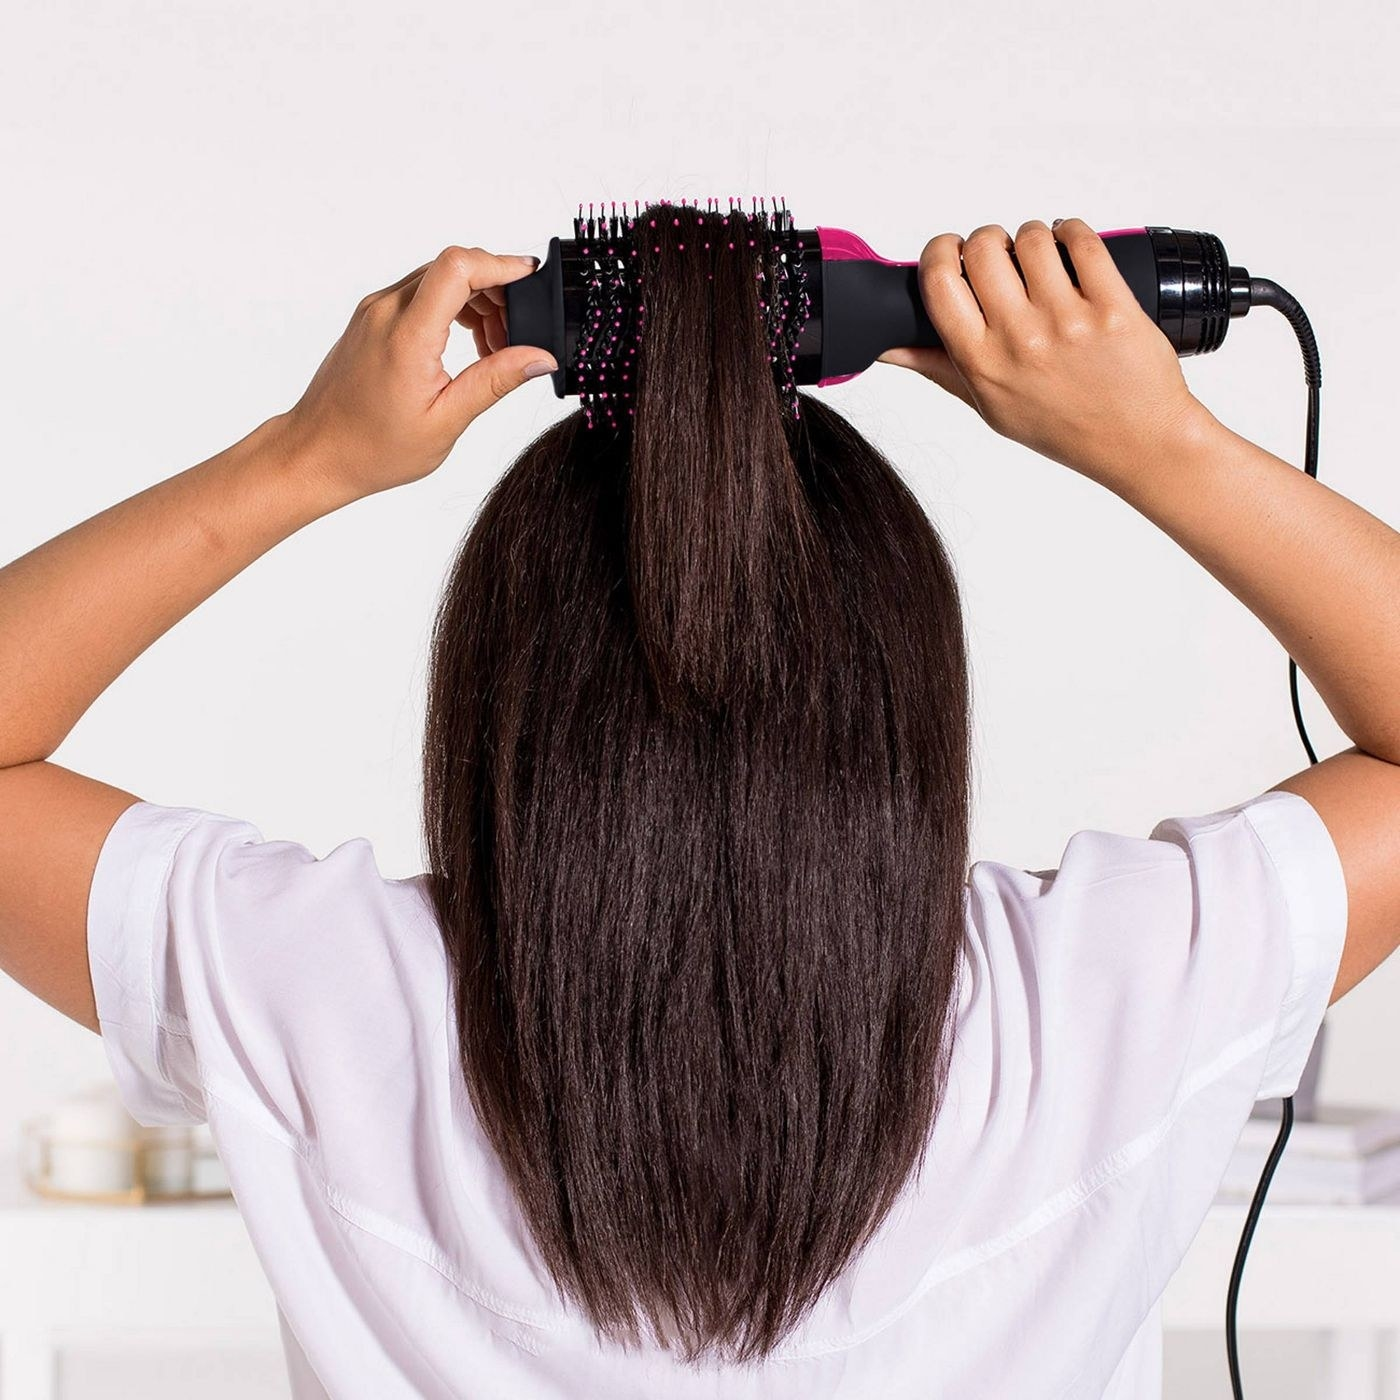 Person using hot brush to style hair